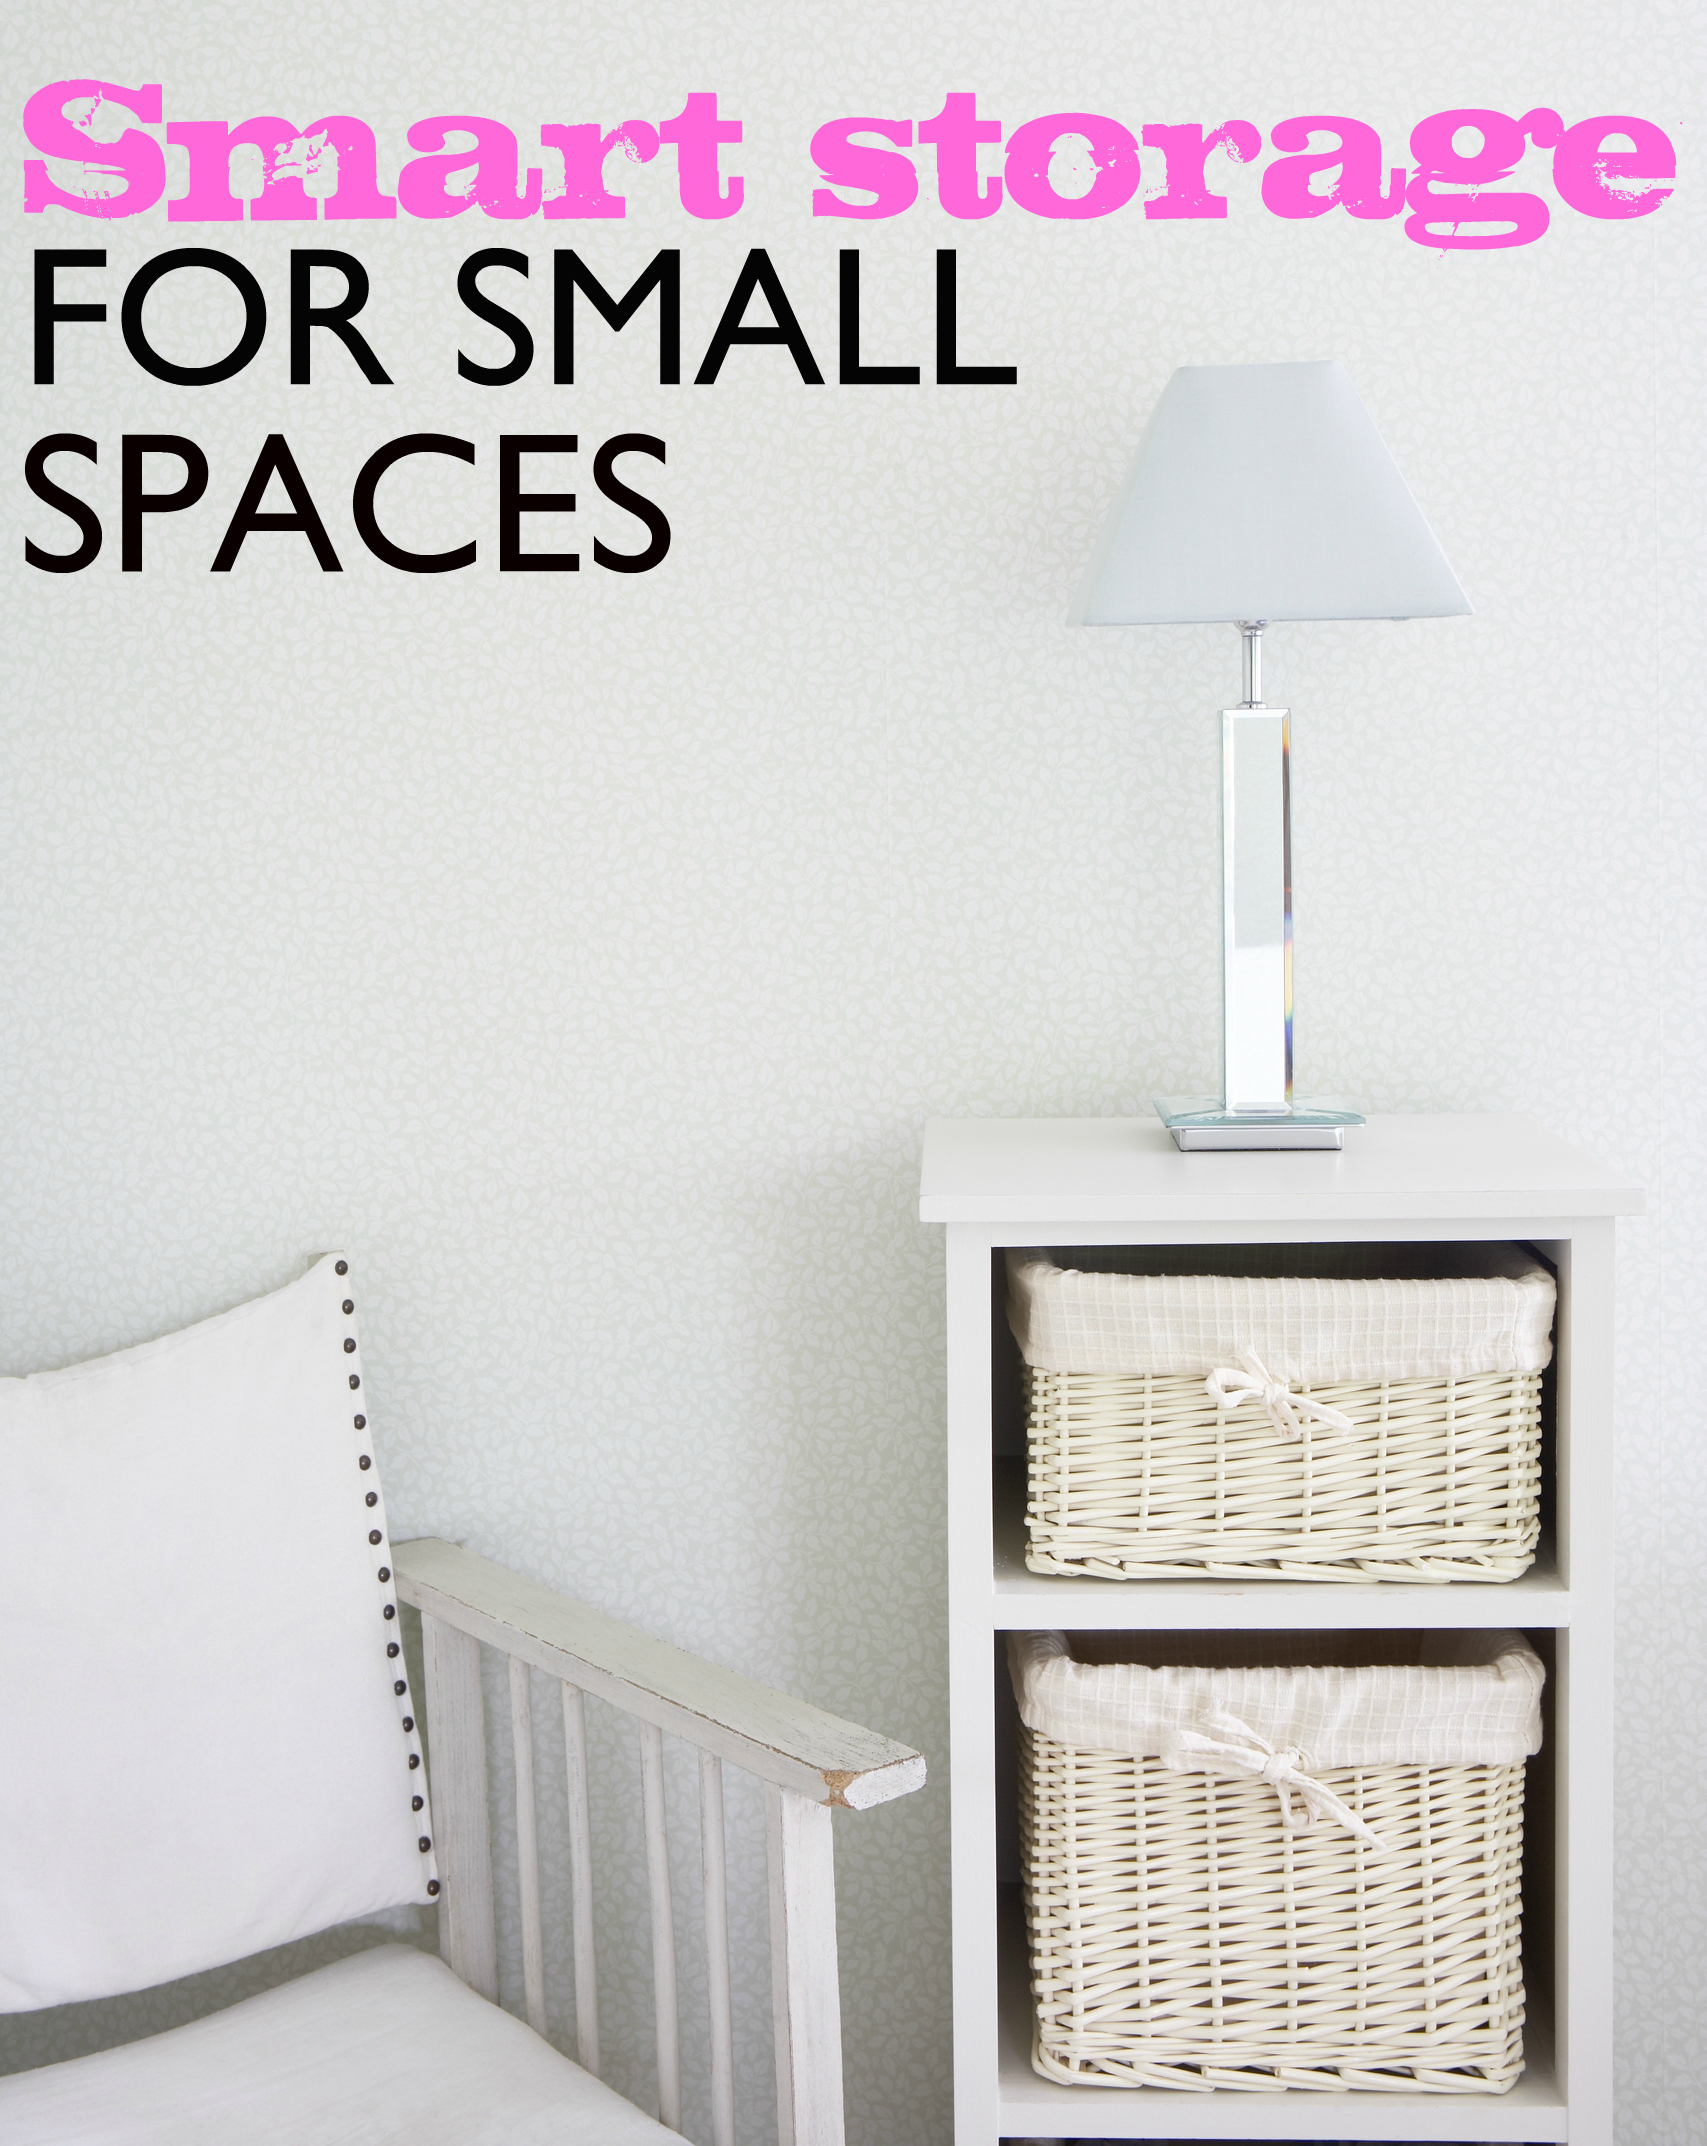 Surprise Storage Ideas For Small Spaces Part 4 Bedroom Closet